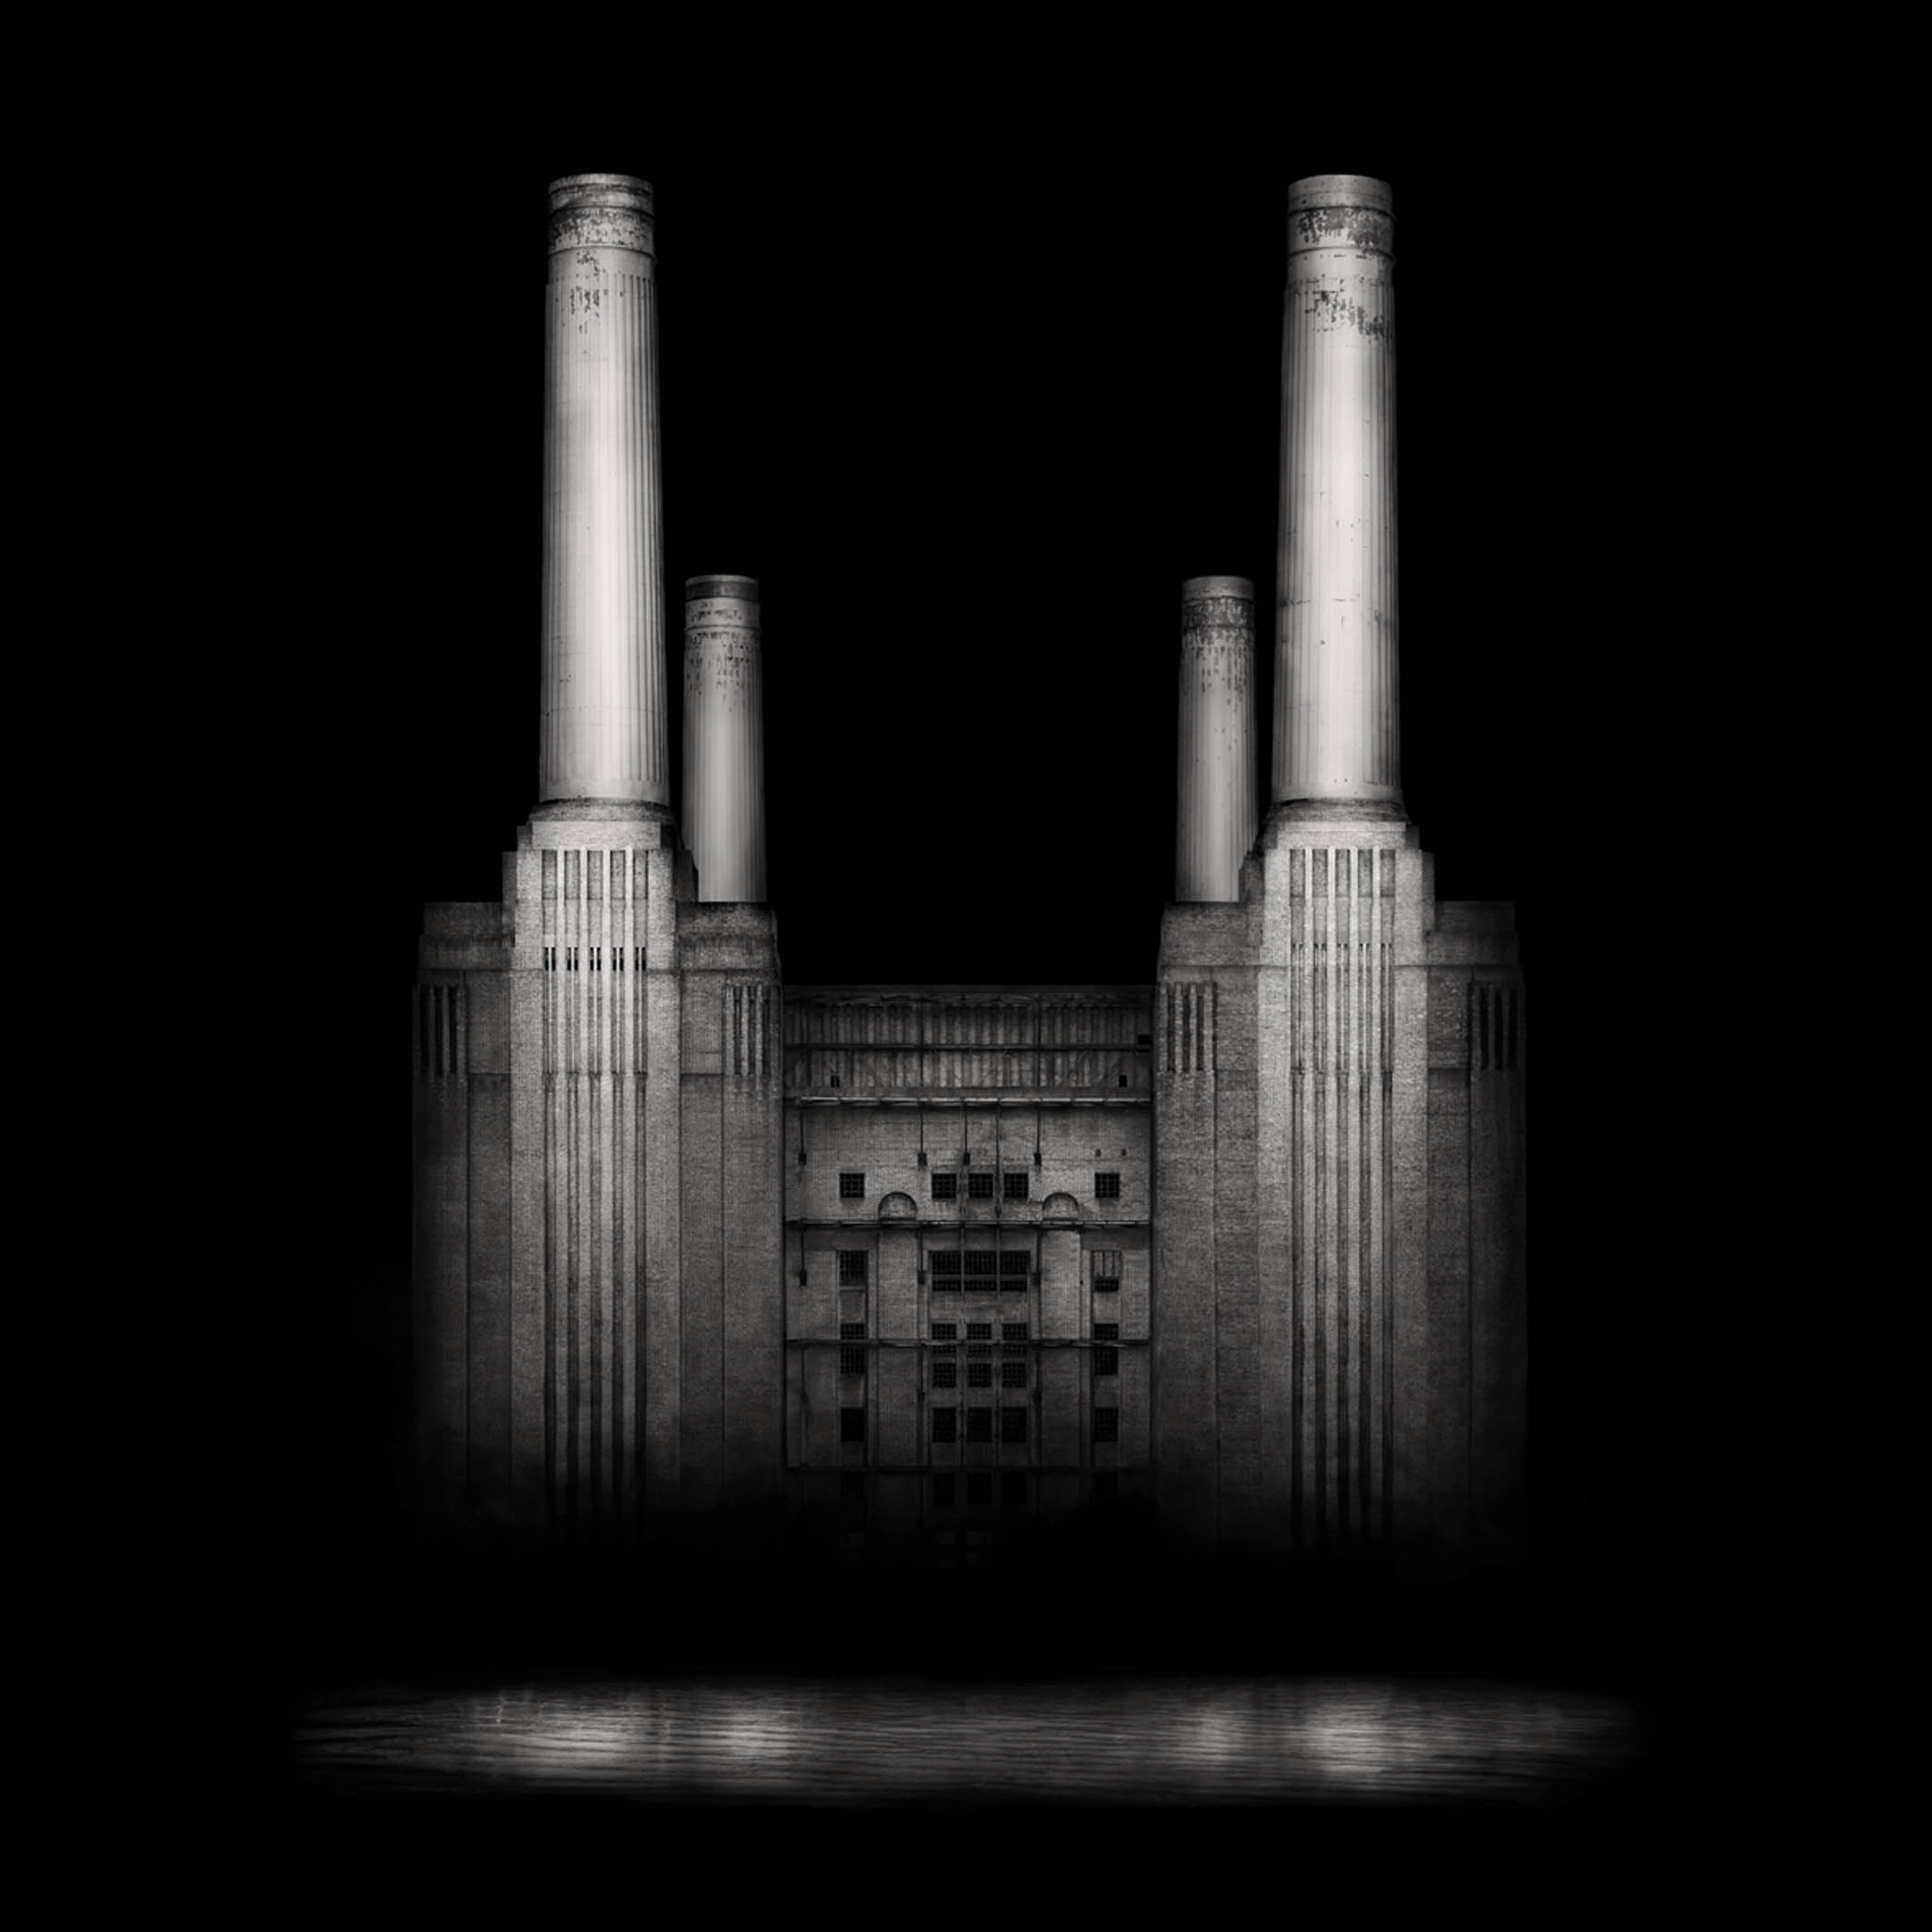 Irene Kung, Battersea Power Station, Londra, 2008